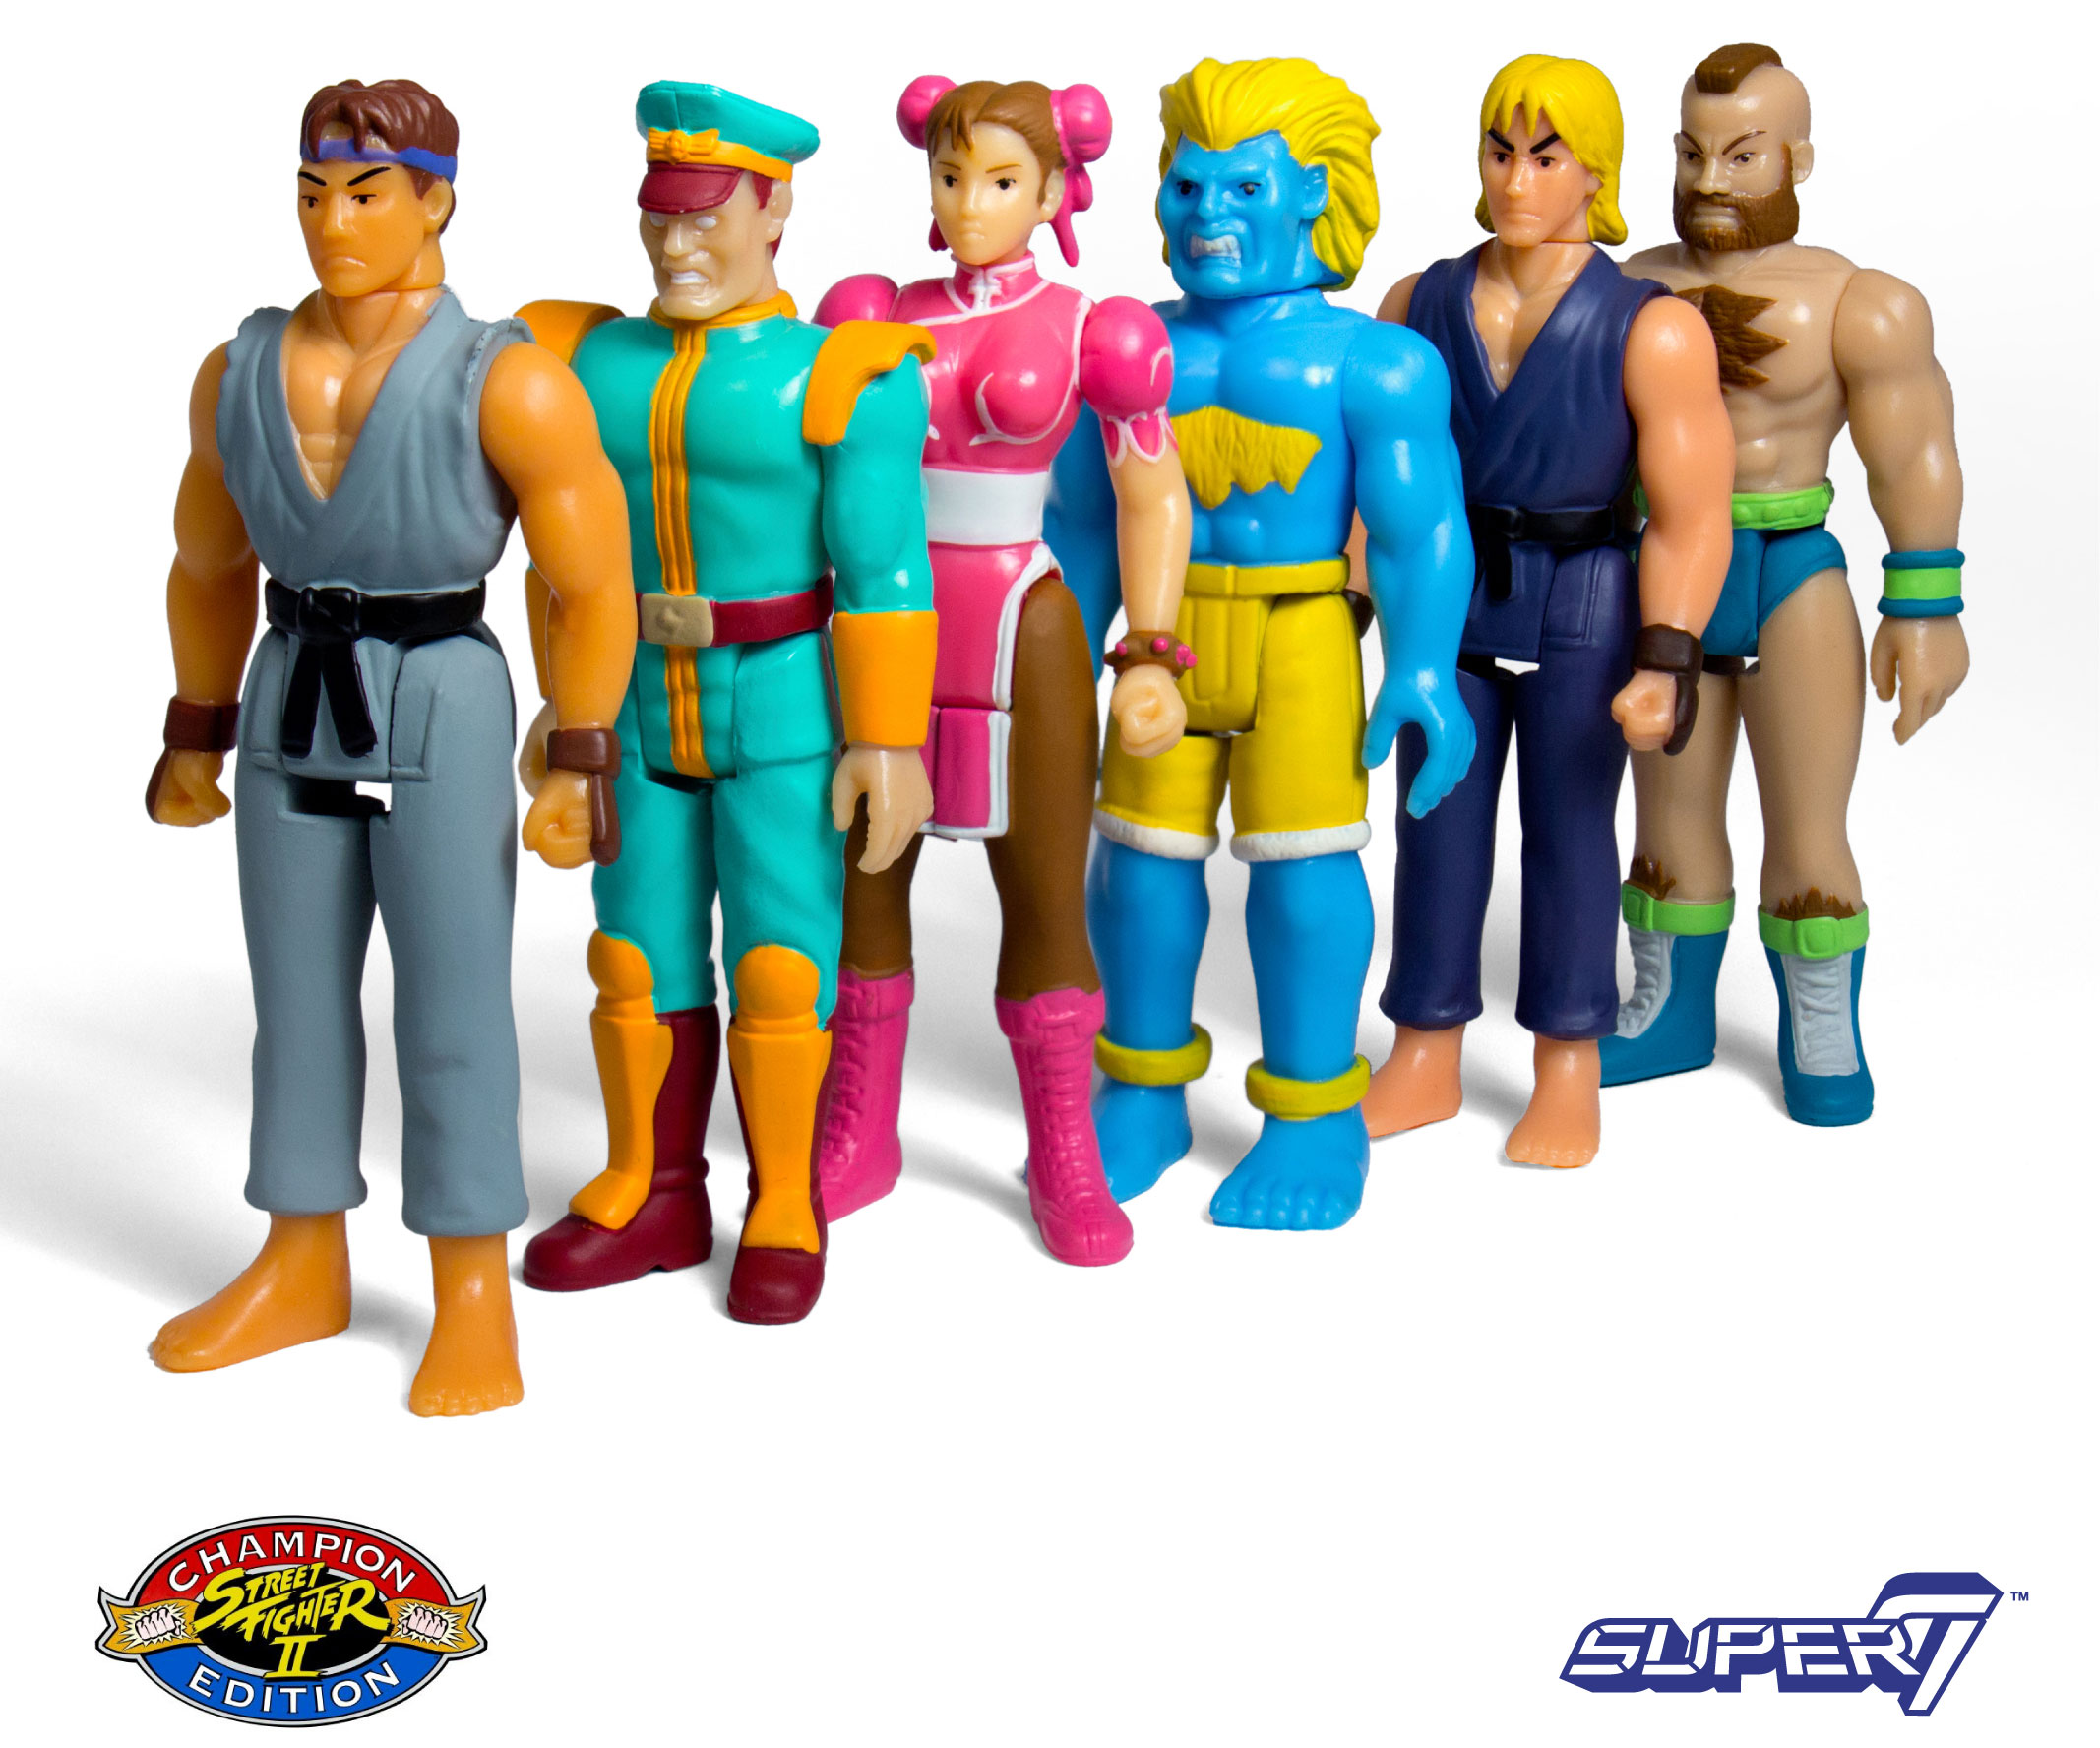 Street Fighter Ii Champion Edition Action Figures By